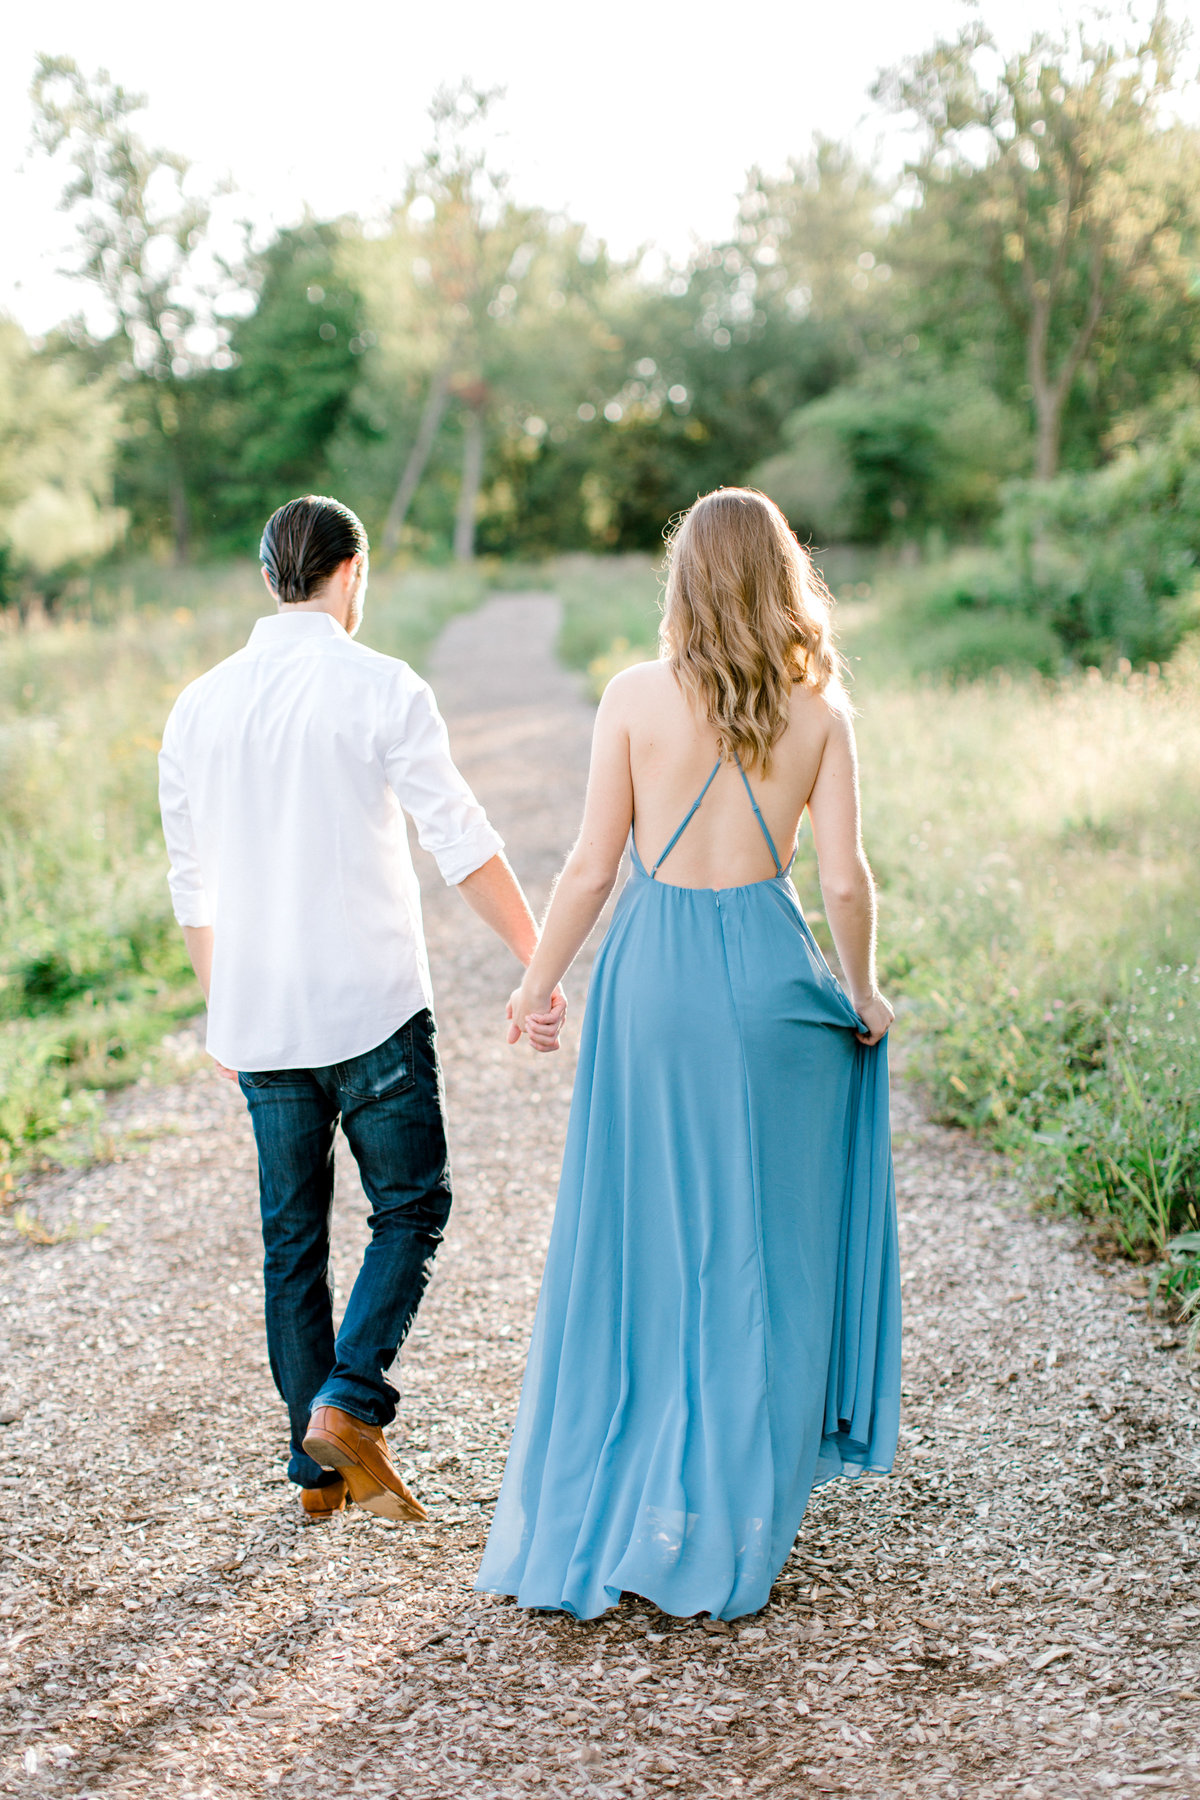 HaileyPeter_Engagement_September102018_05